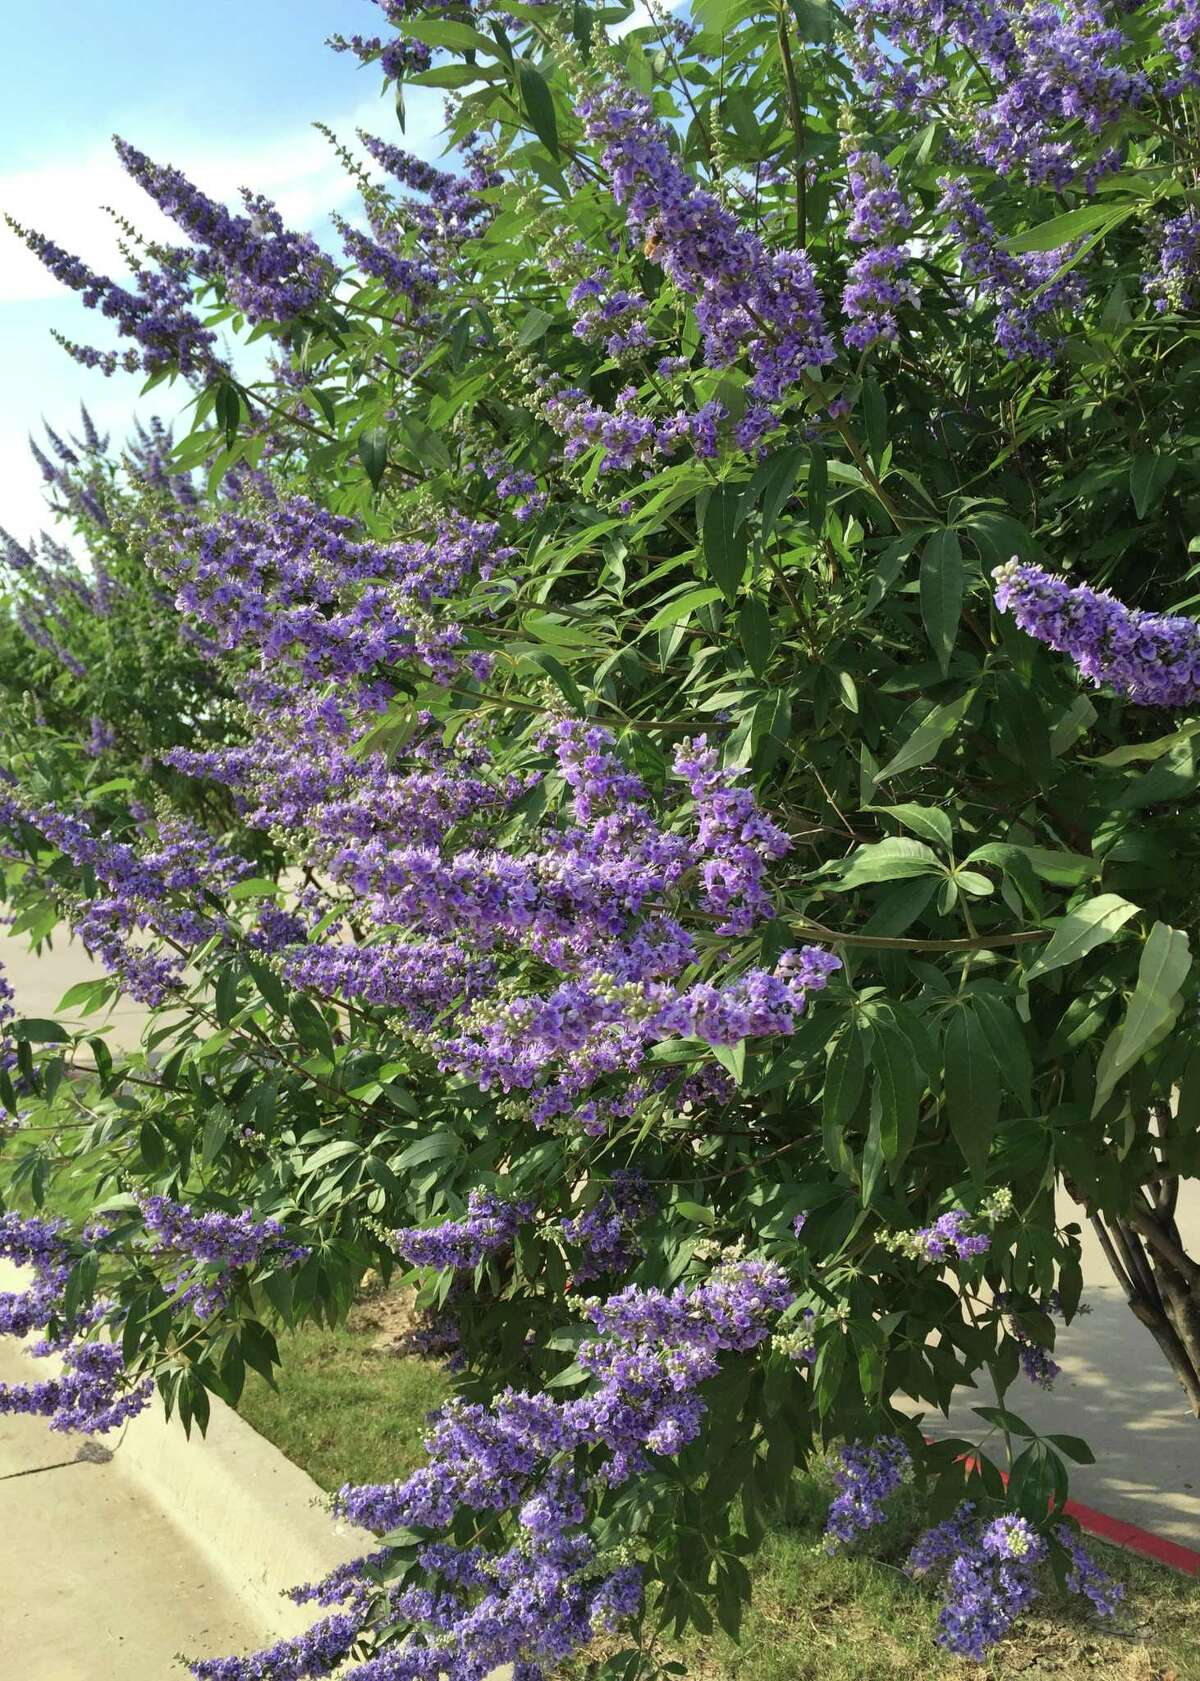 In addition to producing an attractive bloom display, vitex is drought tolerant, pest free, is not eaten by deer and is a favorite nectar source for hummingbirds.